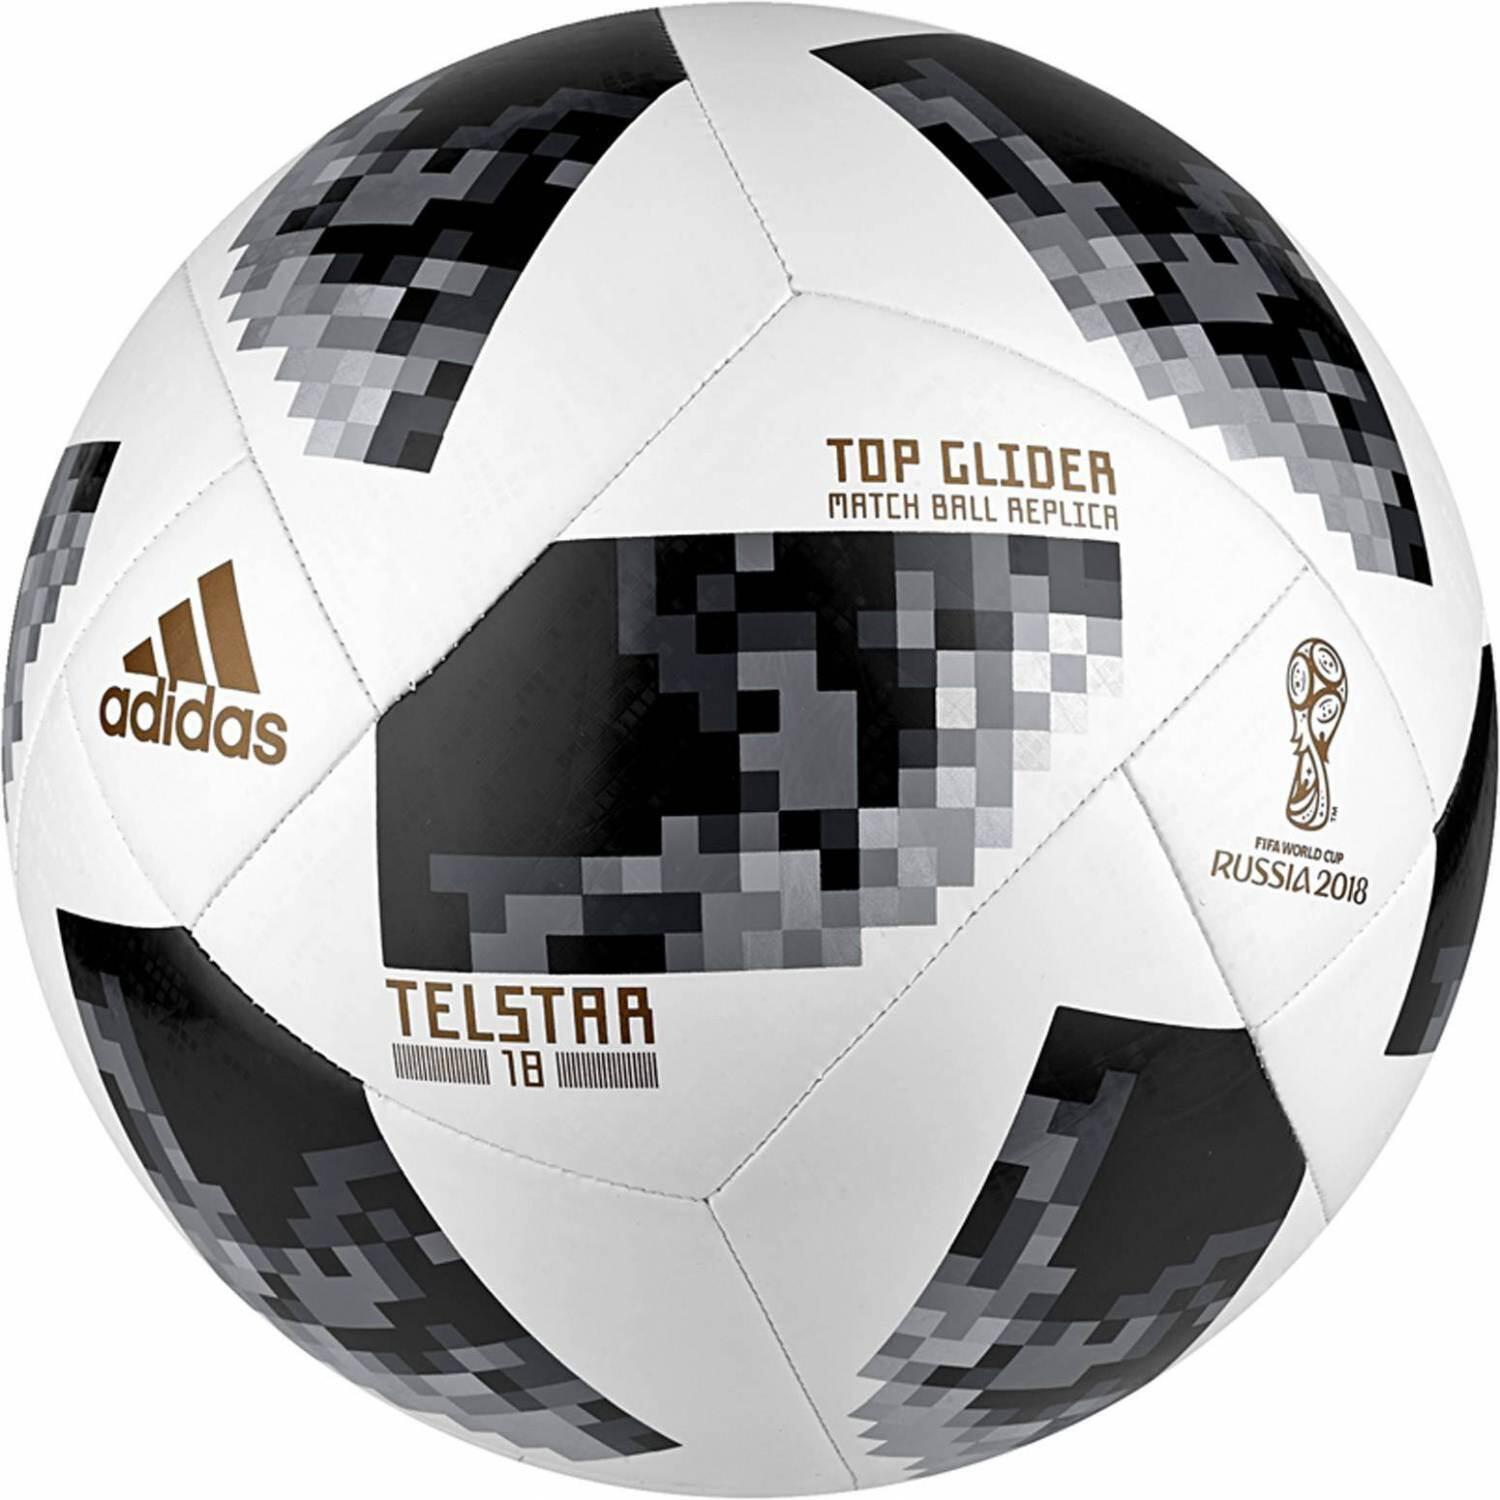 adidas-fu-szlig-ball-top-glider-wm-2018-gr-ouml-szlig-e-5-white-black-silver-metallic-